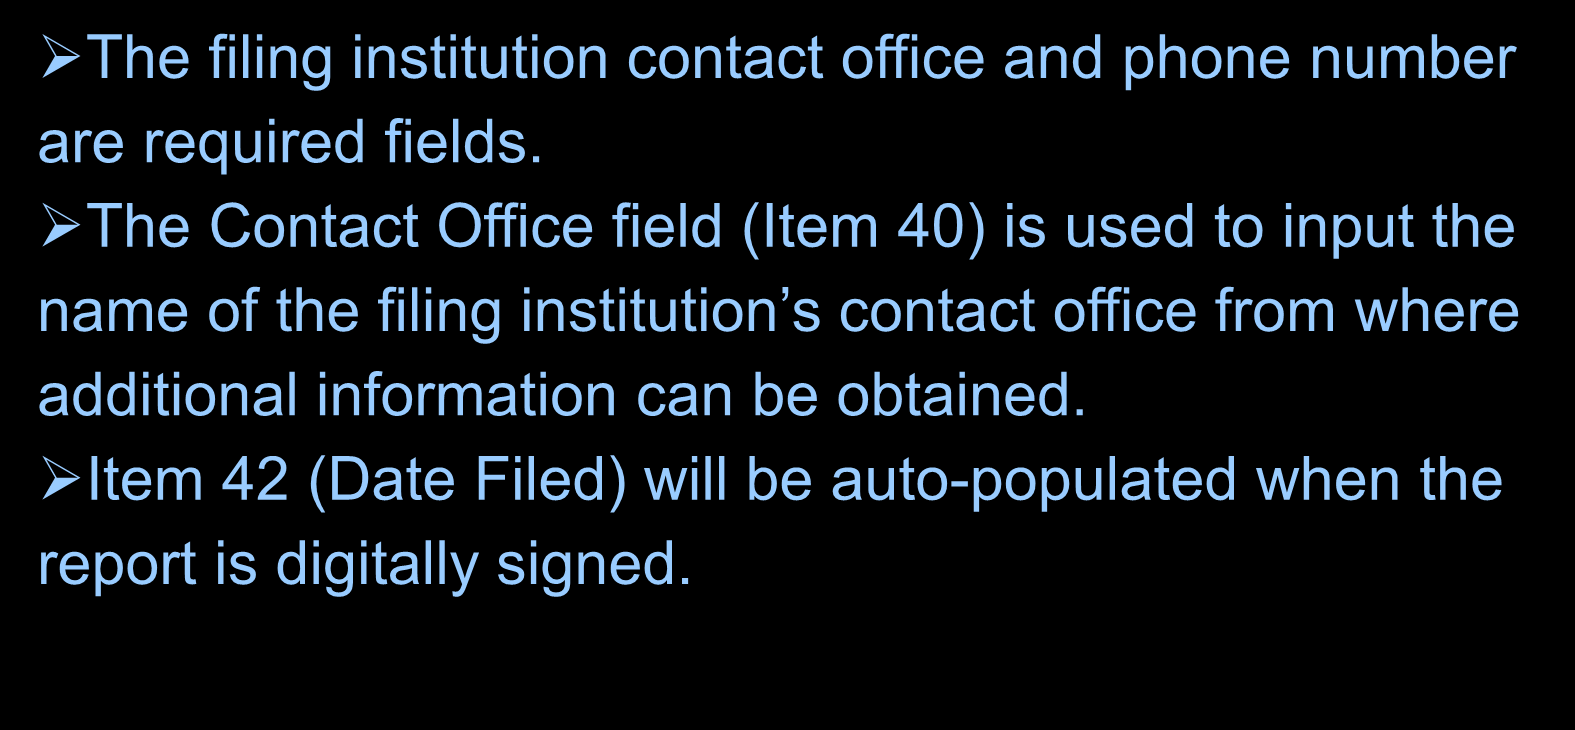 Filing Instructions: How to File the FinCEN CTR The filing institution contact office and phone number are required fields.